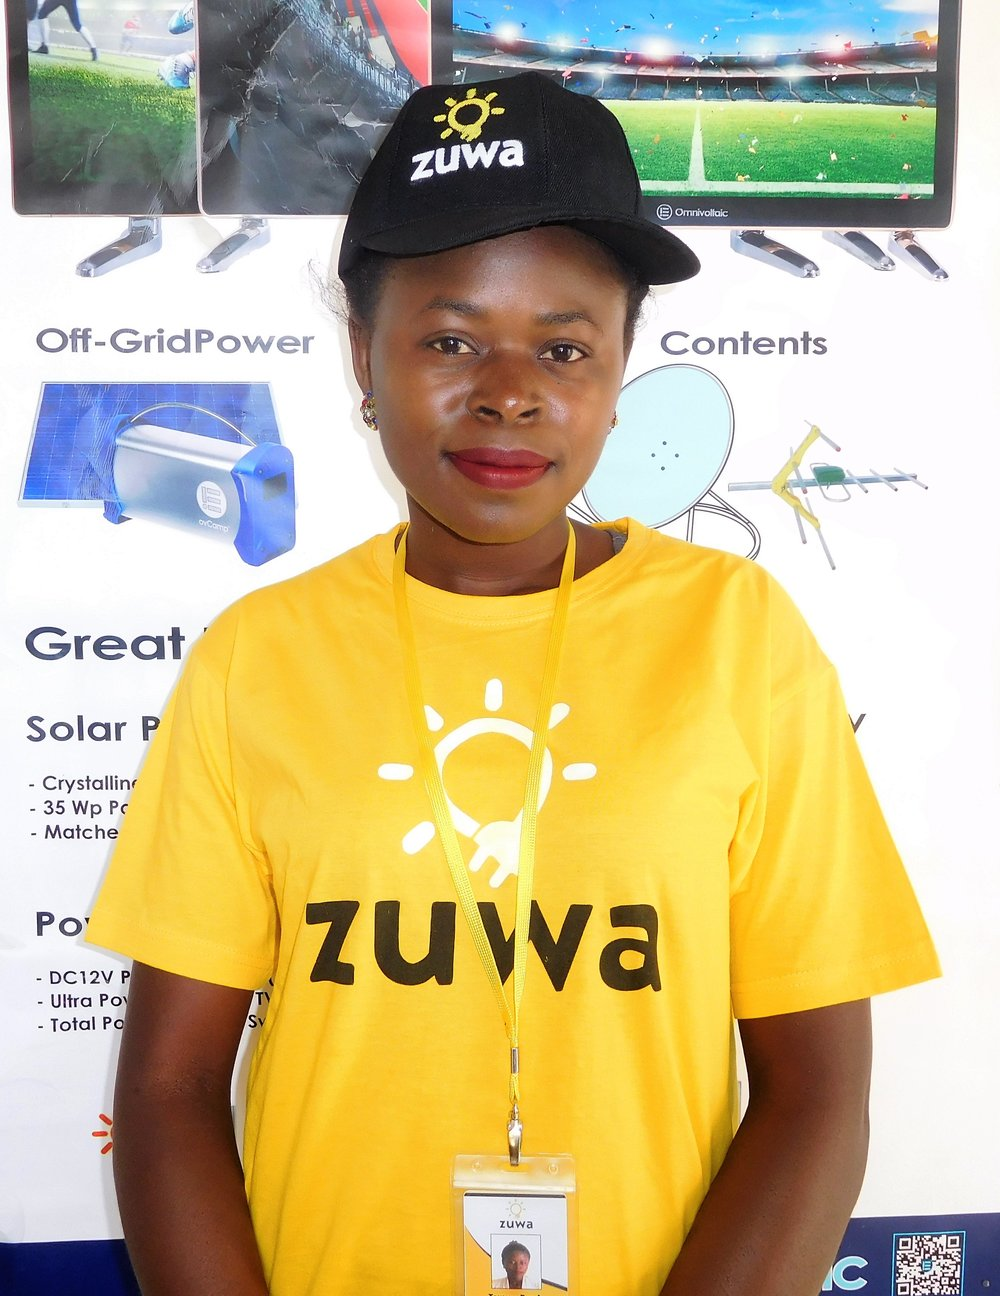 """Towera Banda - """"I am a married business woman, aged 26 and a mother of one, staying in Lilongwe, Area 23. I became a Zuwa agent because of my passion in sales and marketing and being Zuwa's agent meant that not only do I get to practice that, but I get to sell and install the best products. Zuwa's products are simply unique and I love the fact that they reach out not only to the people in urban areas, but to those in rural and off grid areas as well."""""""